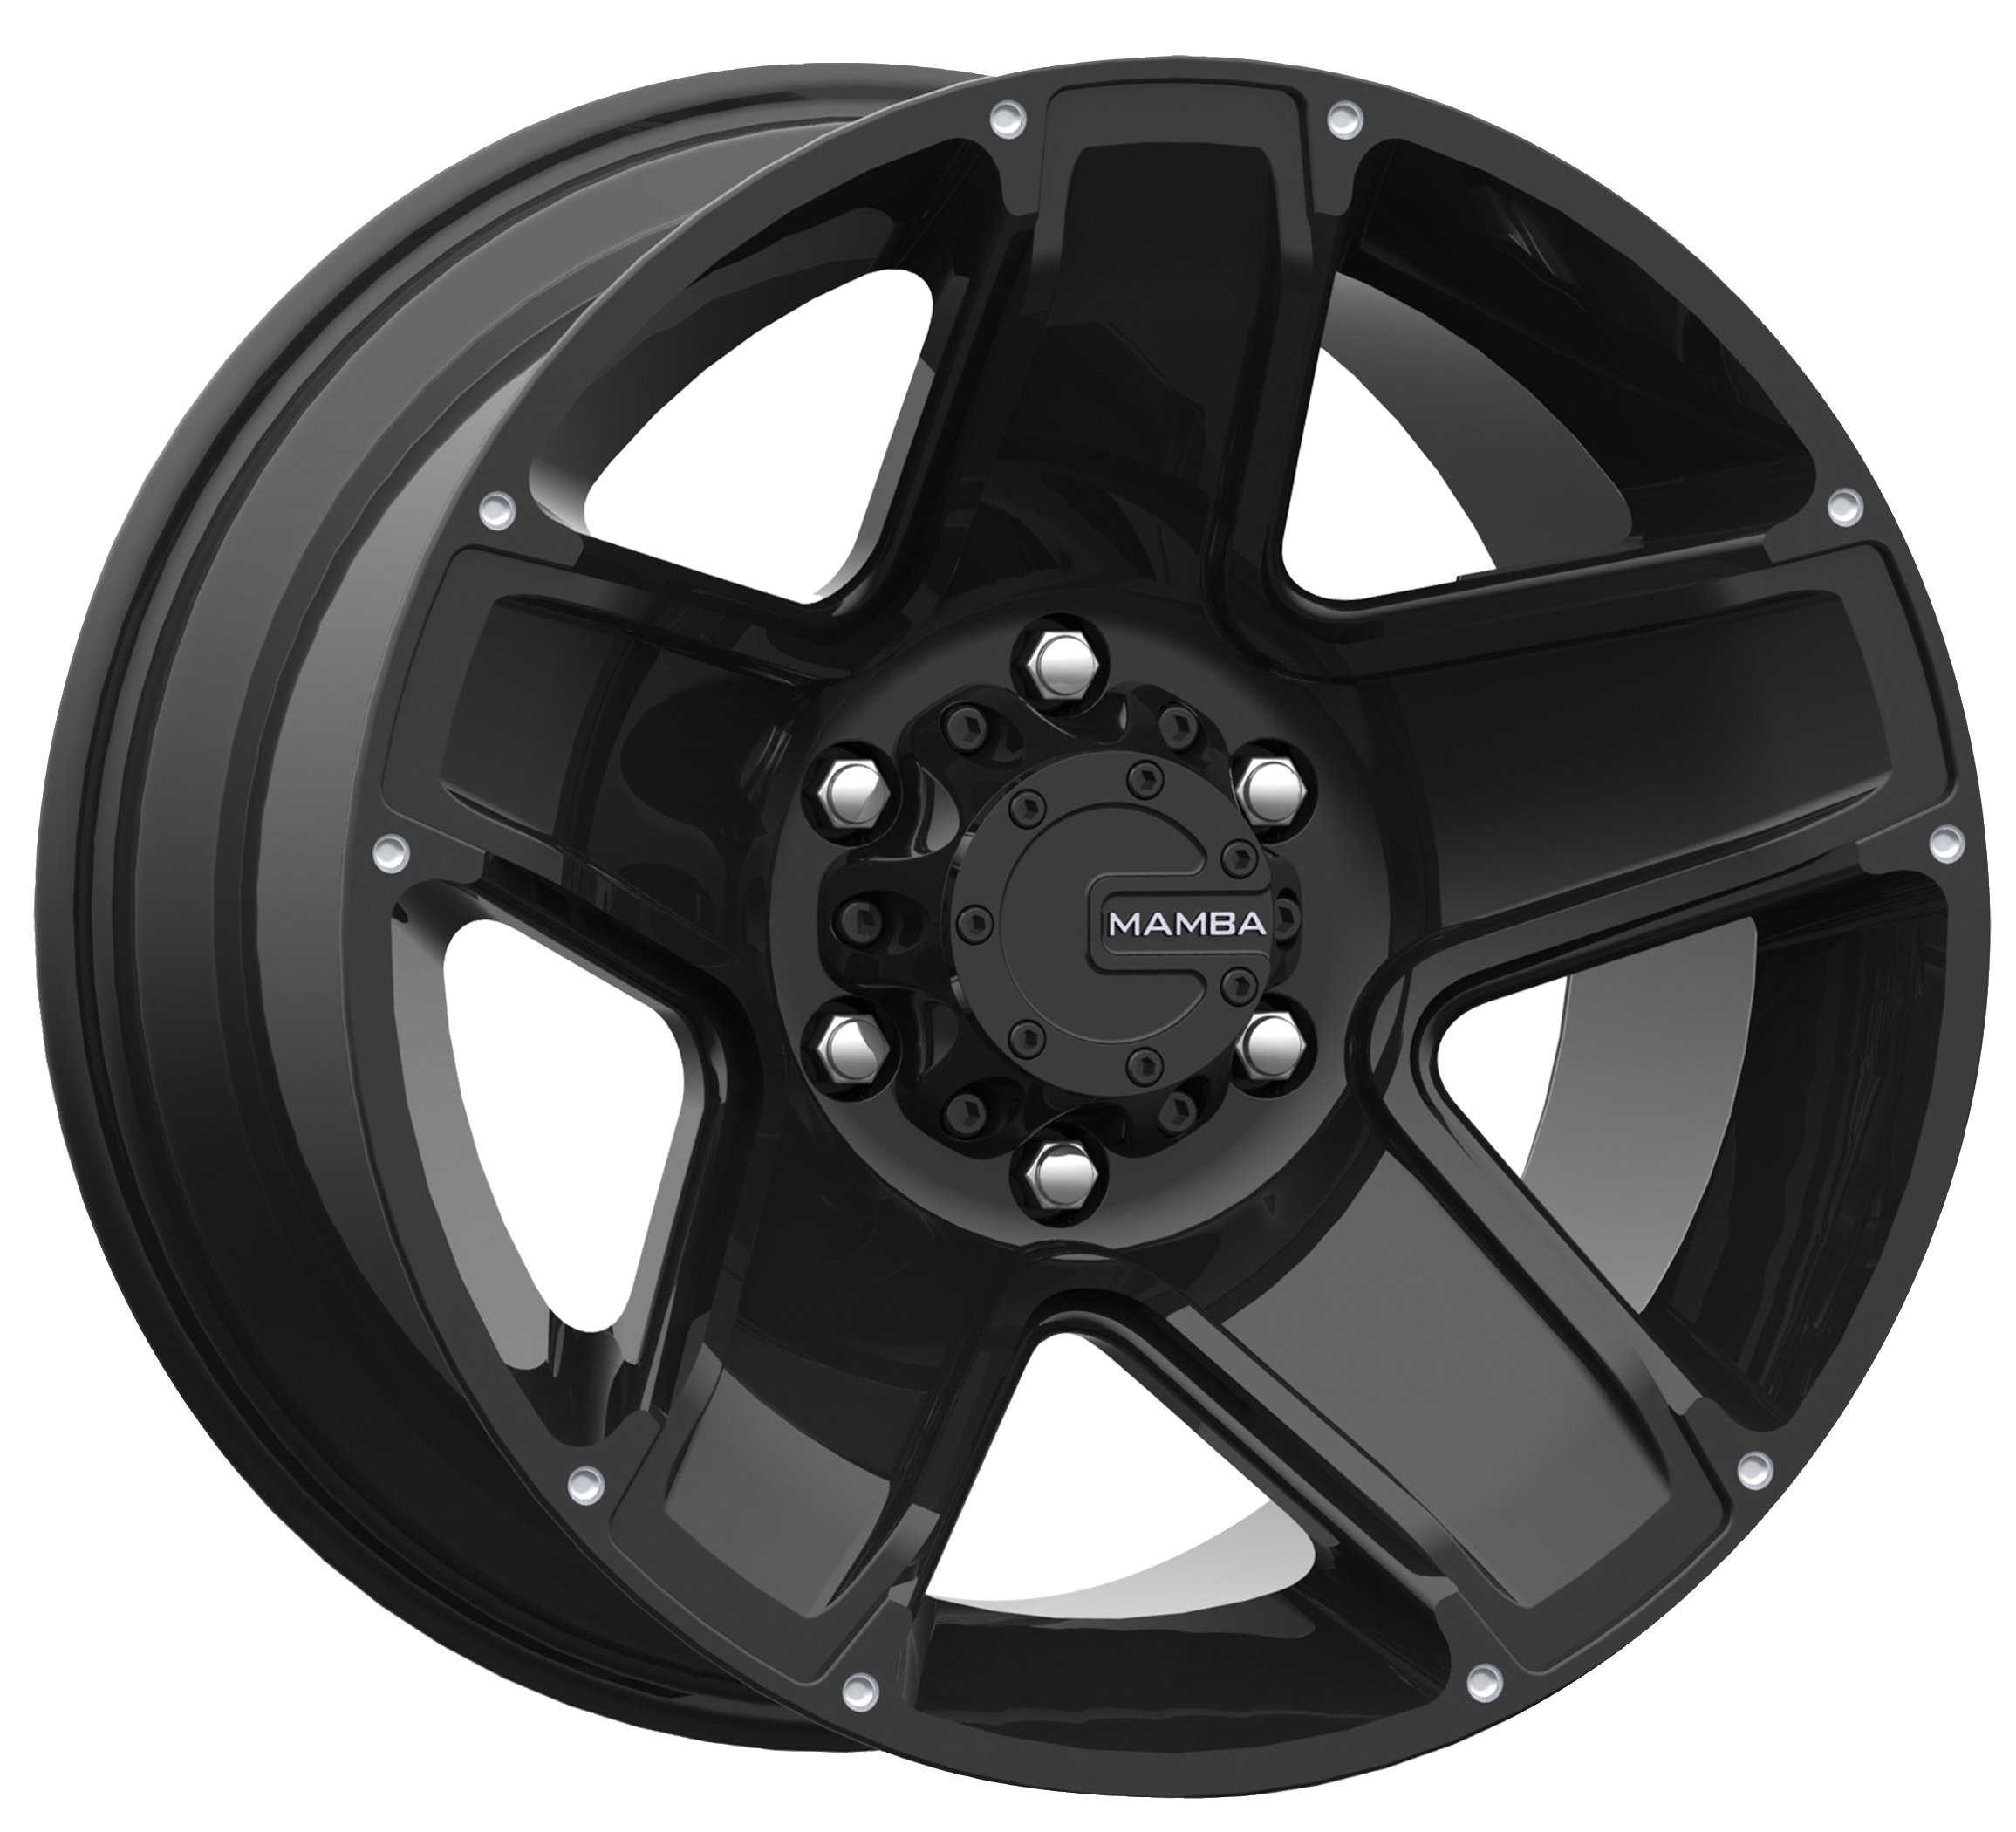 Mamba-M13-Matte-Black-Wheel-17x95x127mm-12mm-offset